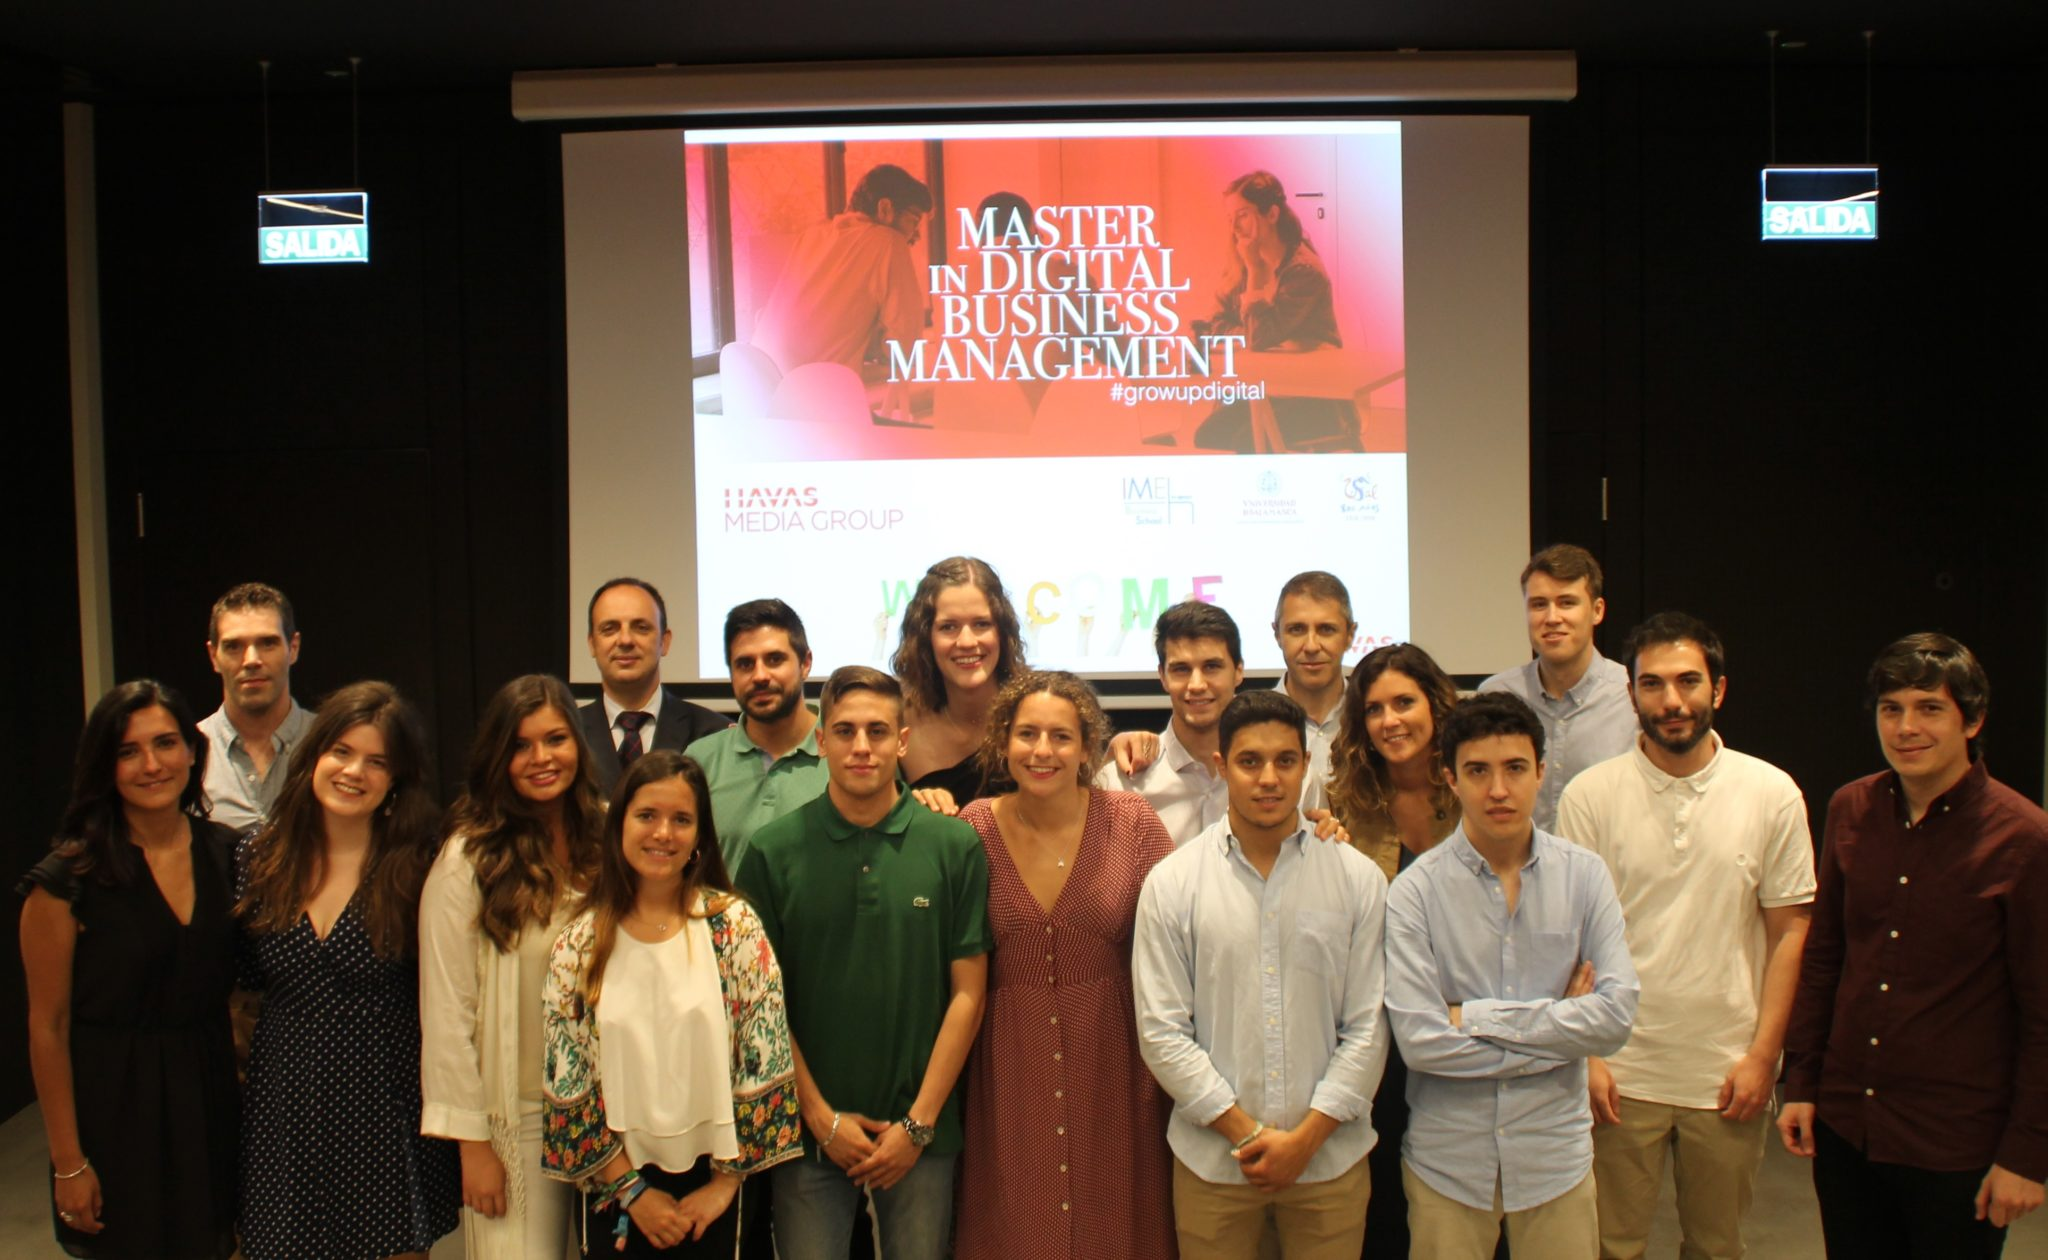 MASTER_Havas Media - IME Business School